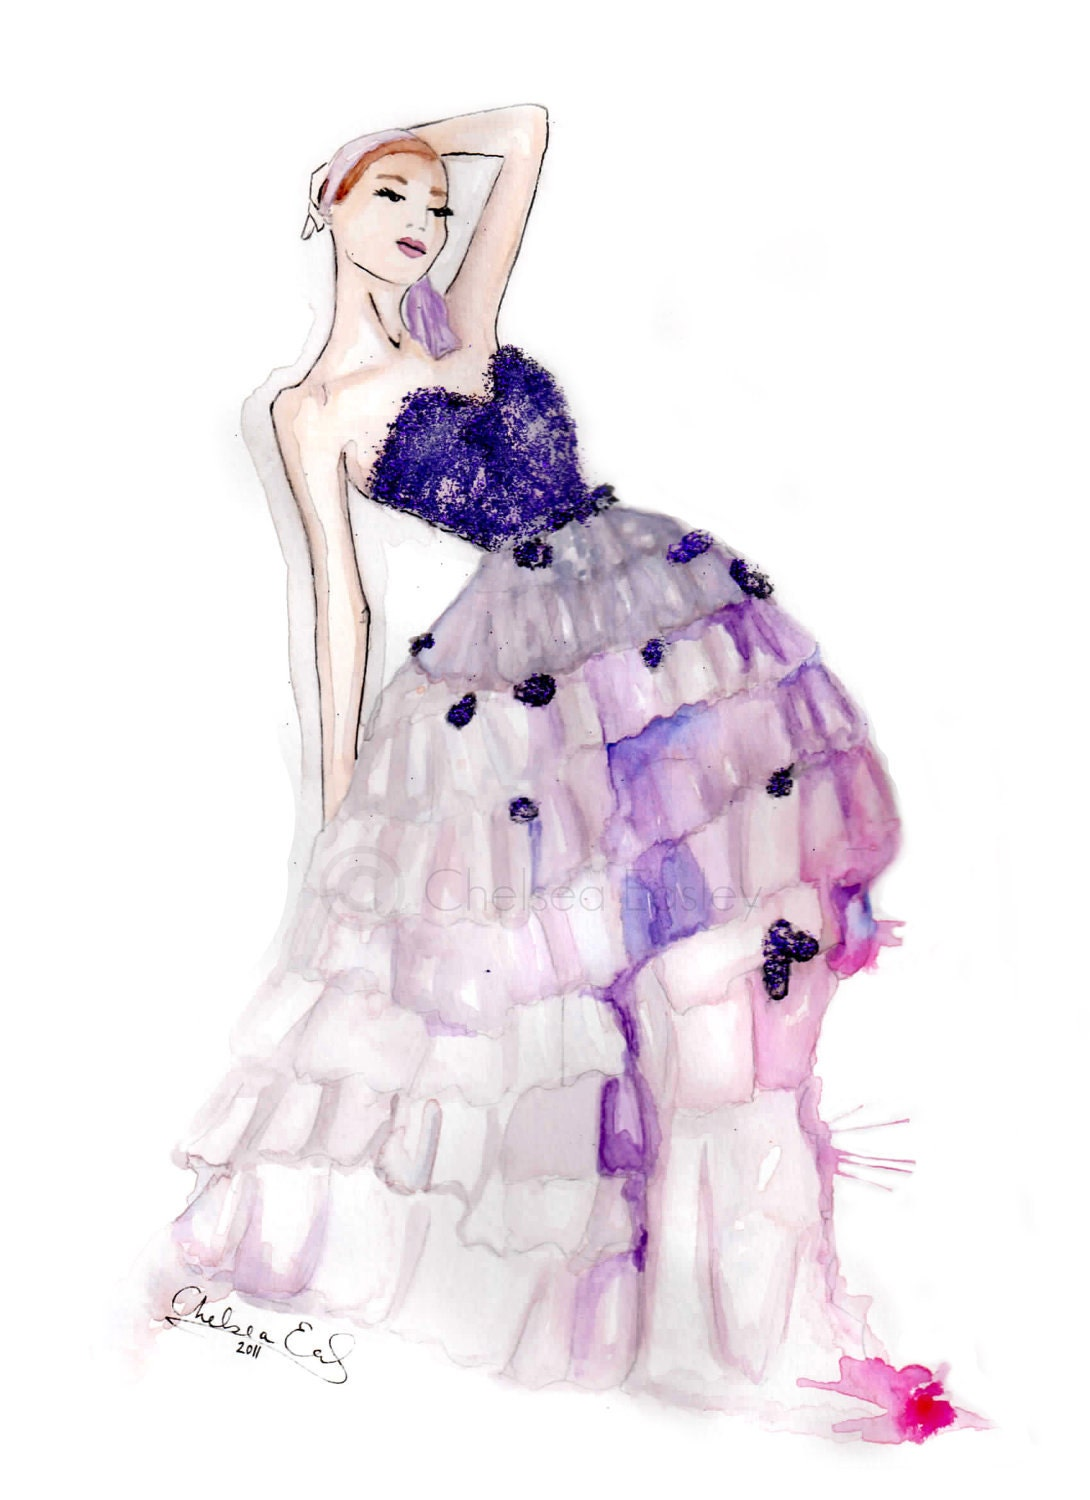 Fashion Sketches as well Contemporary Fashion Illustration also Intricate Watercolors Of Maja Wronska further Picture Perfect Kim Kardashian Rihanna Beyonces Met Ball Outfits Given Artistic Touch Cool Illustrations also Fashion Design Sketchers. on oscar de la renta drawings